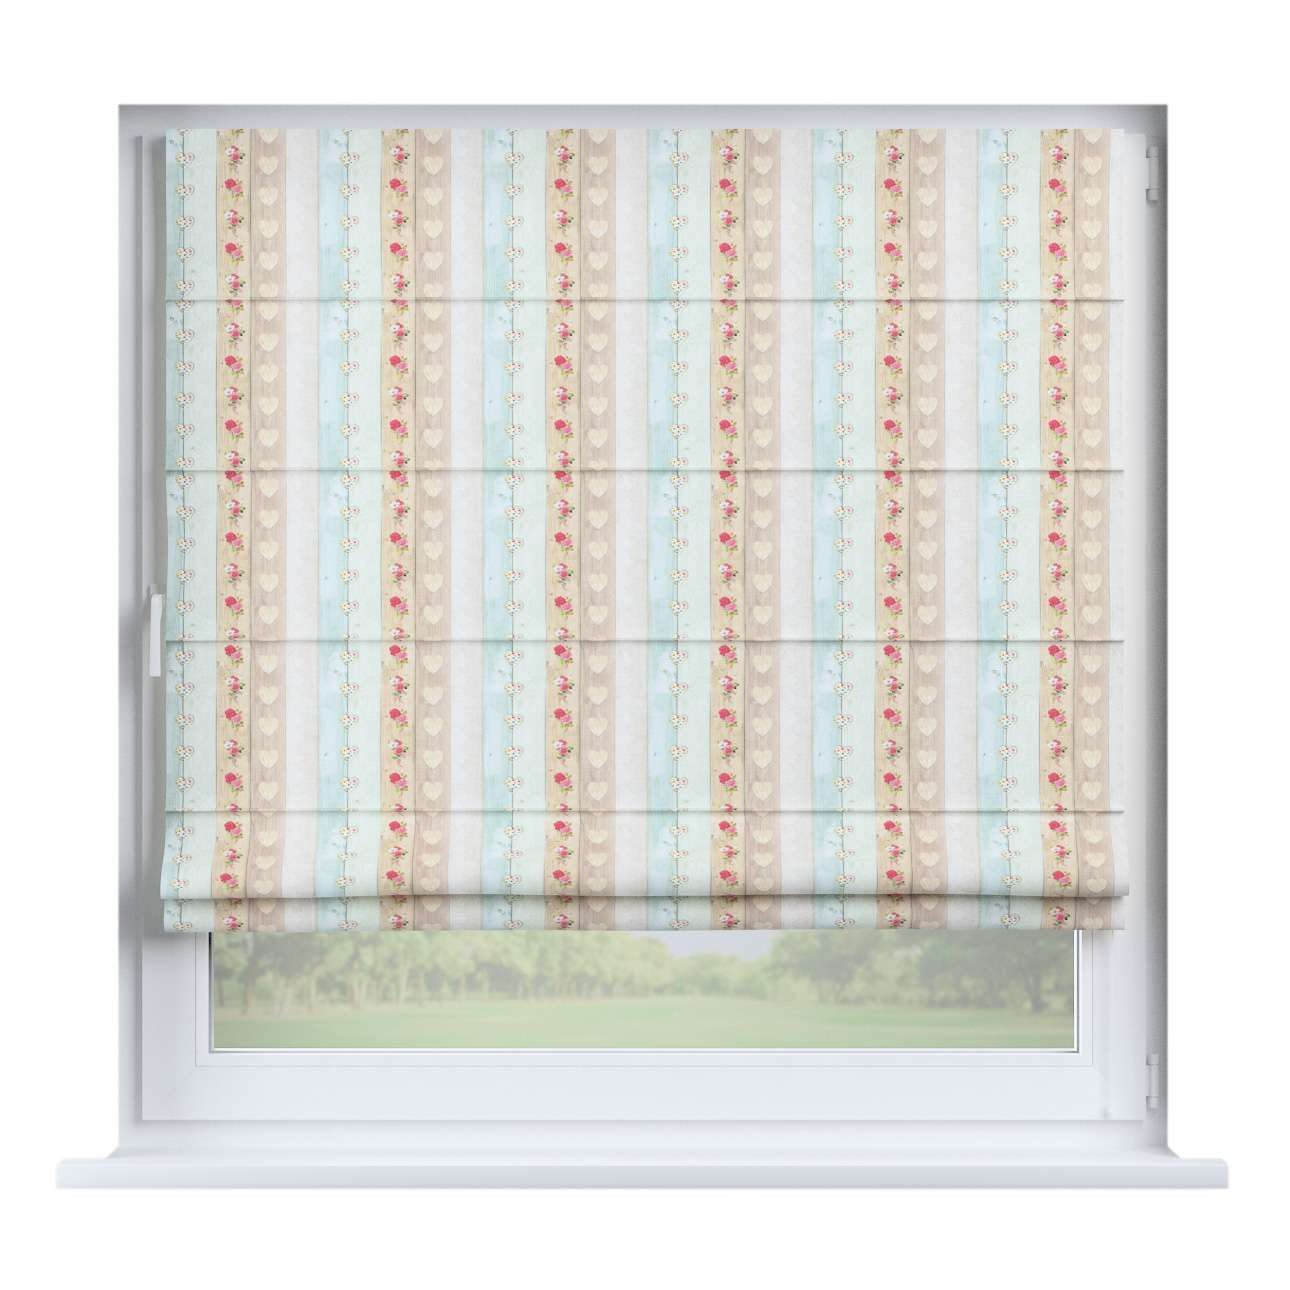 Capri roman blind 80 x 170 cm (31.5 x 67 inch) in collection Ashley, fabric: 140-20